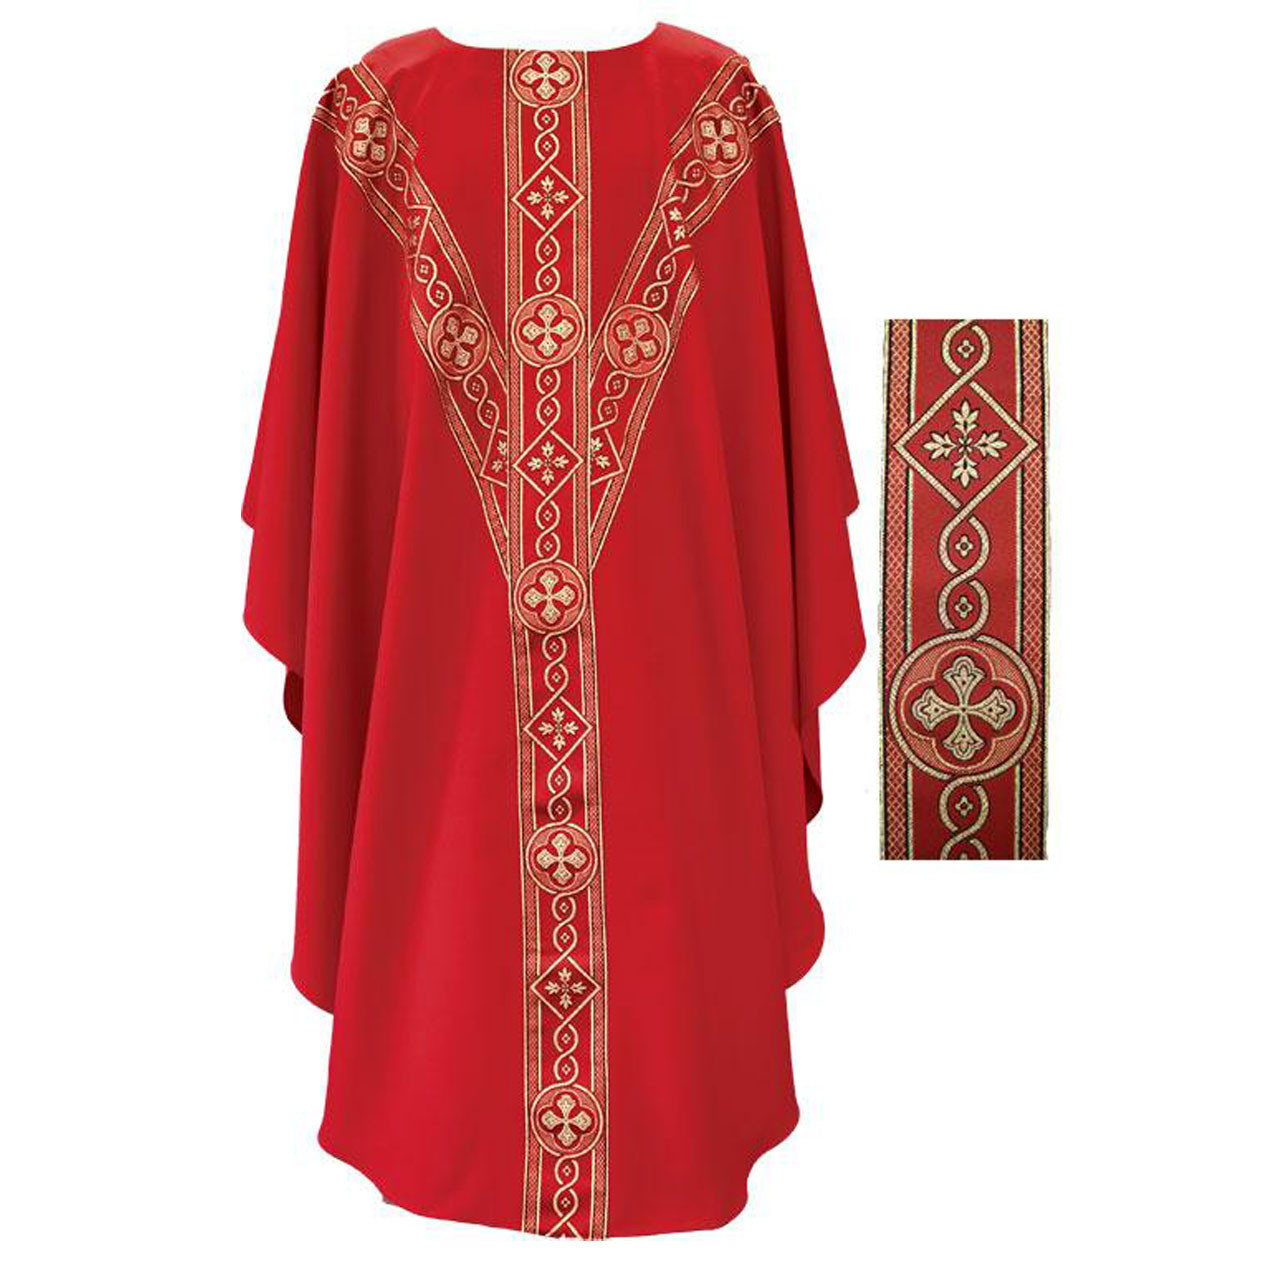 2144R Chasuble Red